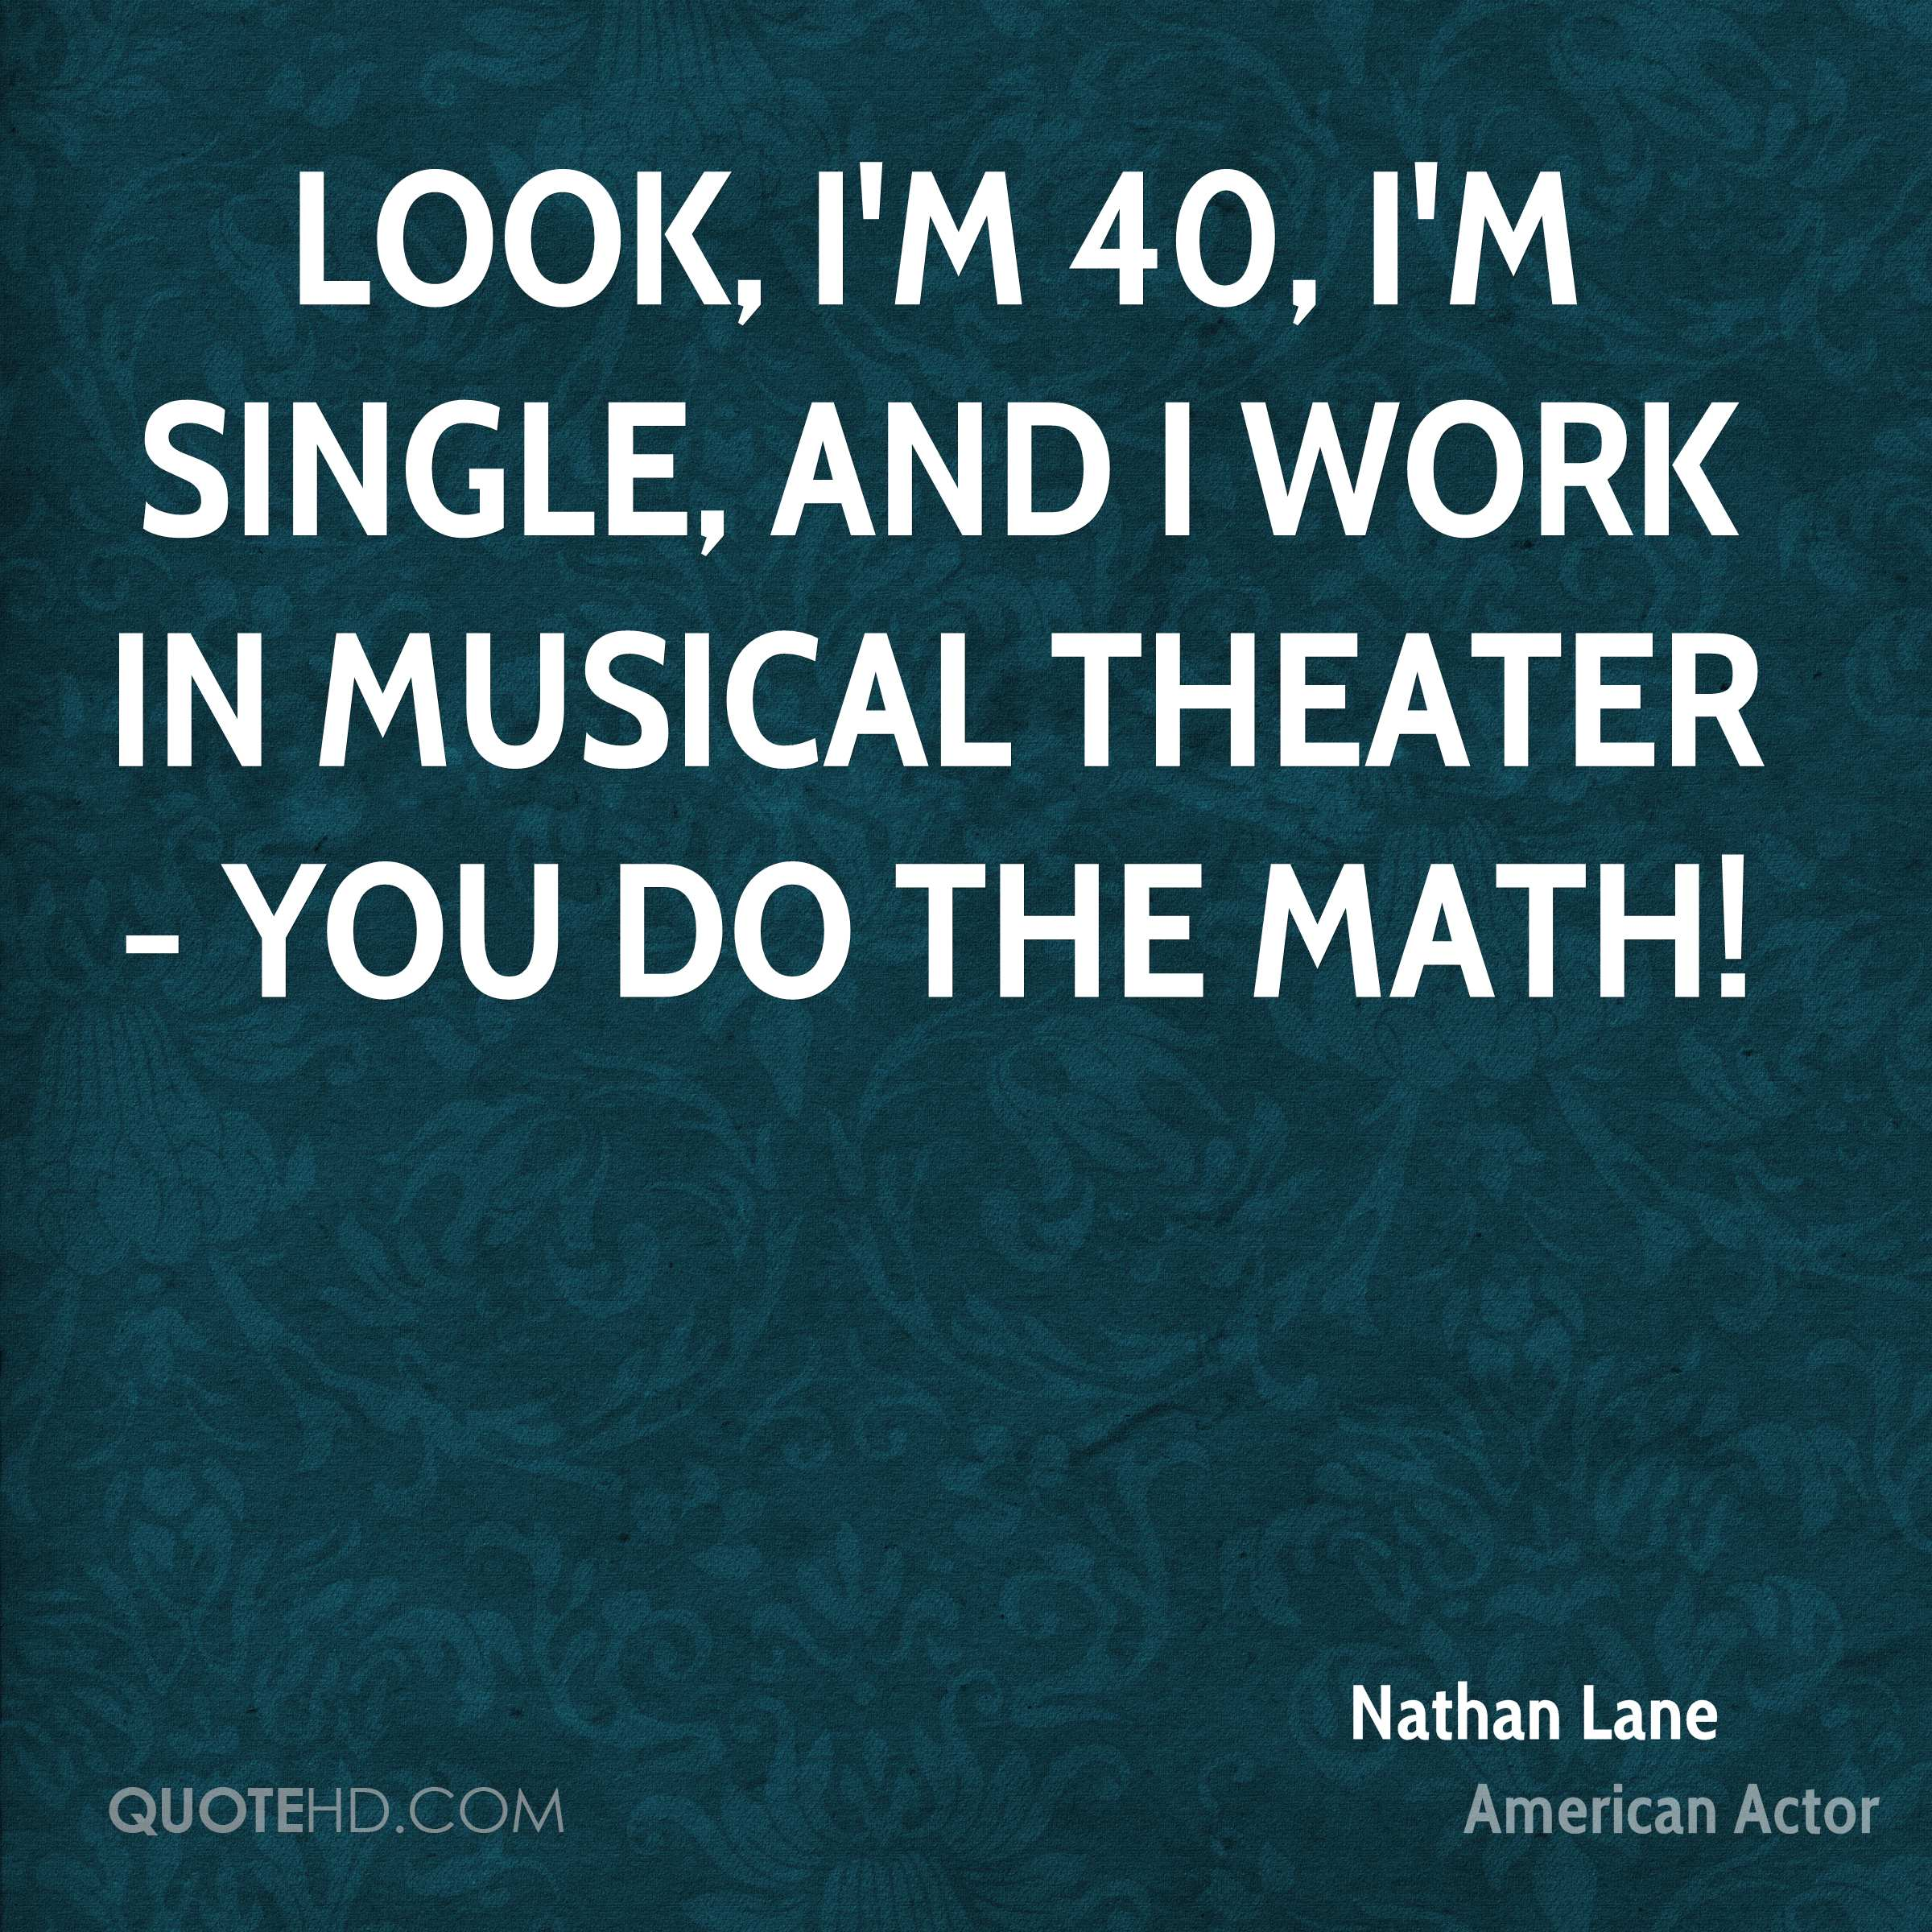 Look, I'm 40, I'm single, and I work in musical theater - you do the math!